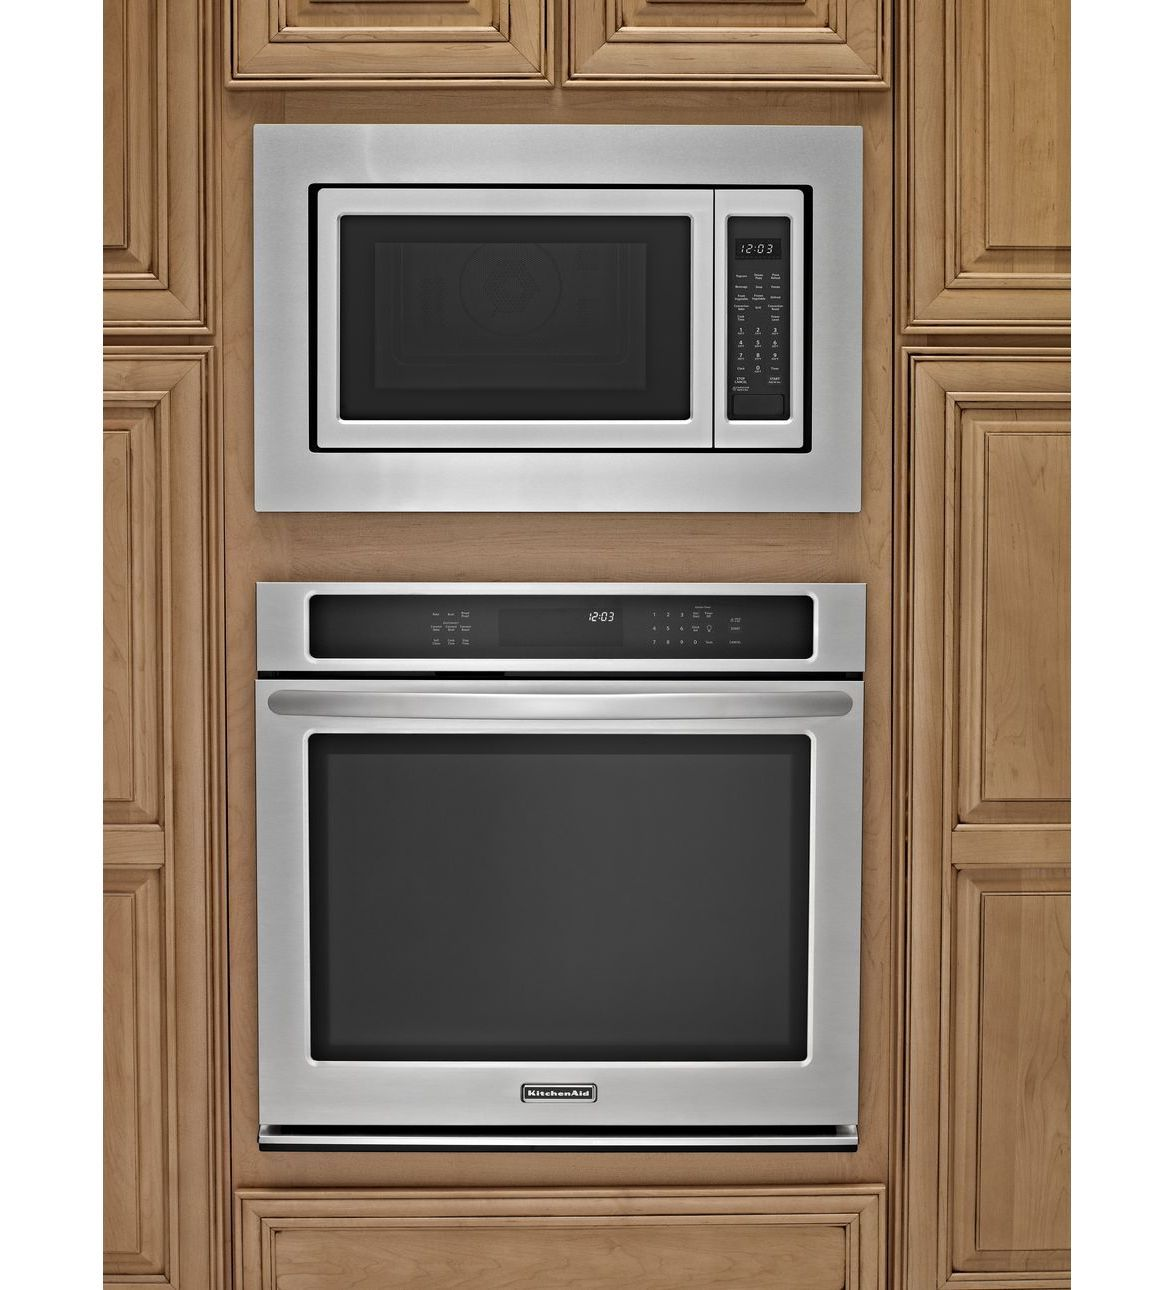 Kitchenaid Countertop Convection Microwave Oven Architect Series Ii Stainless Steel Home Depot Canada